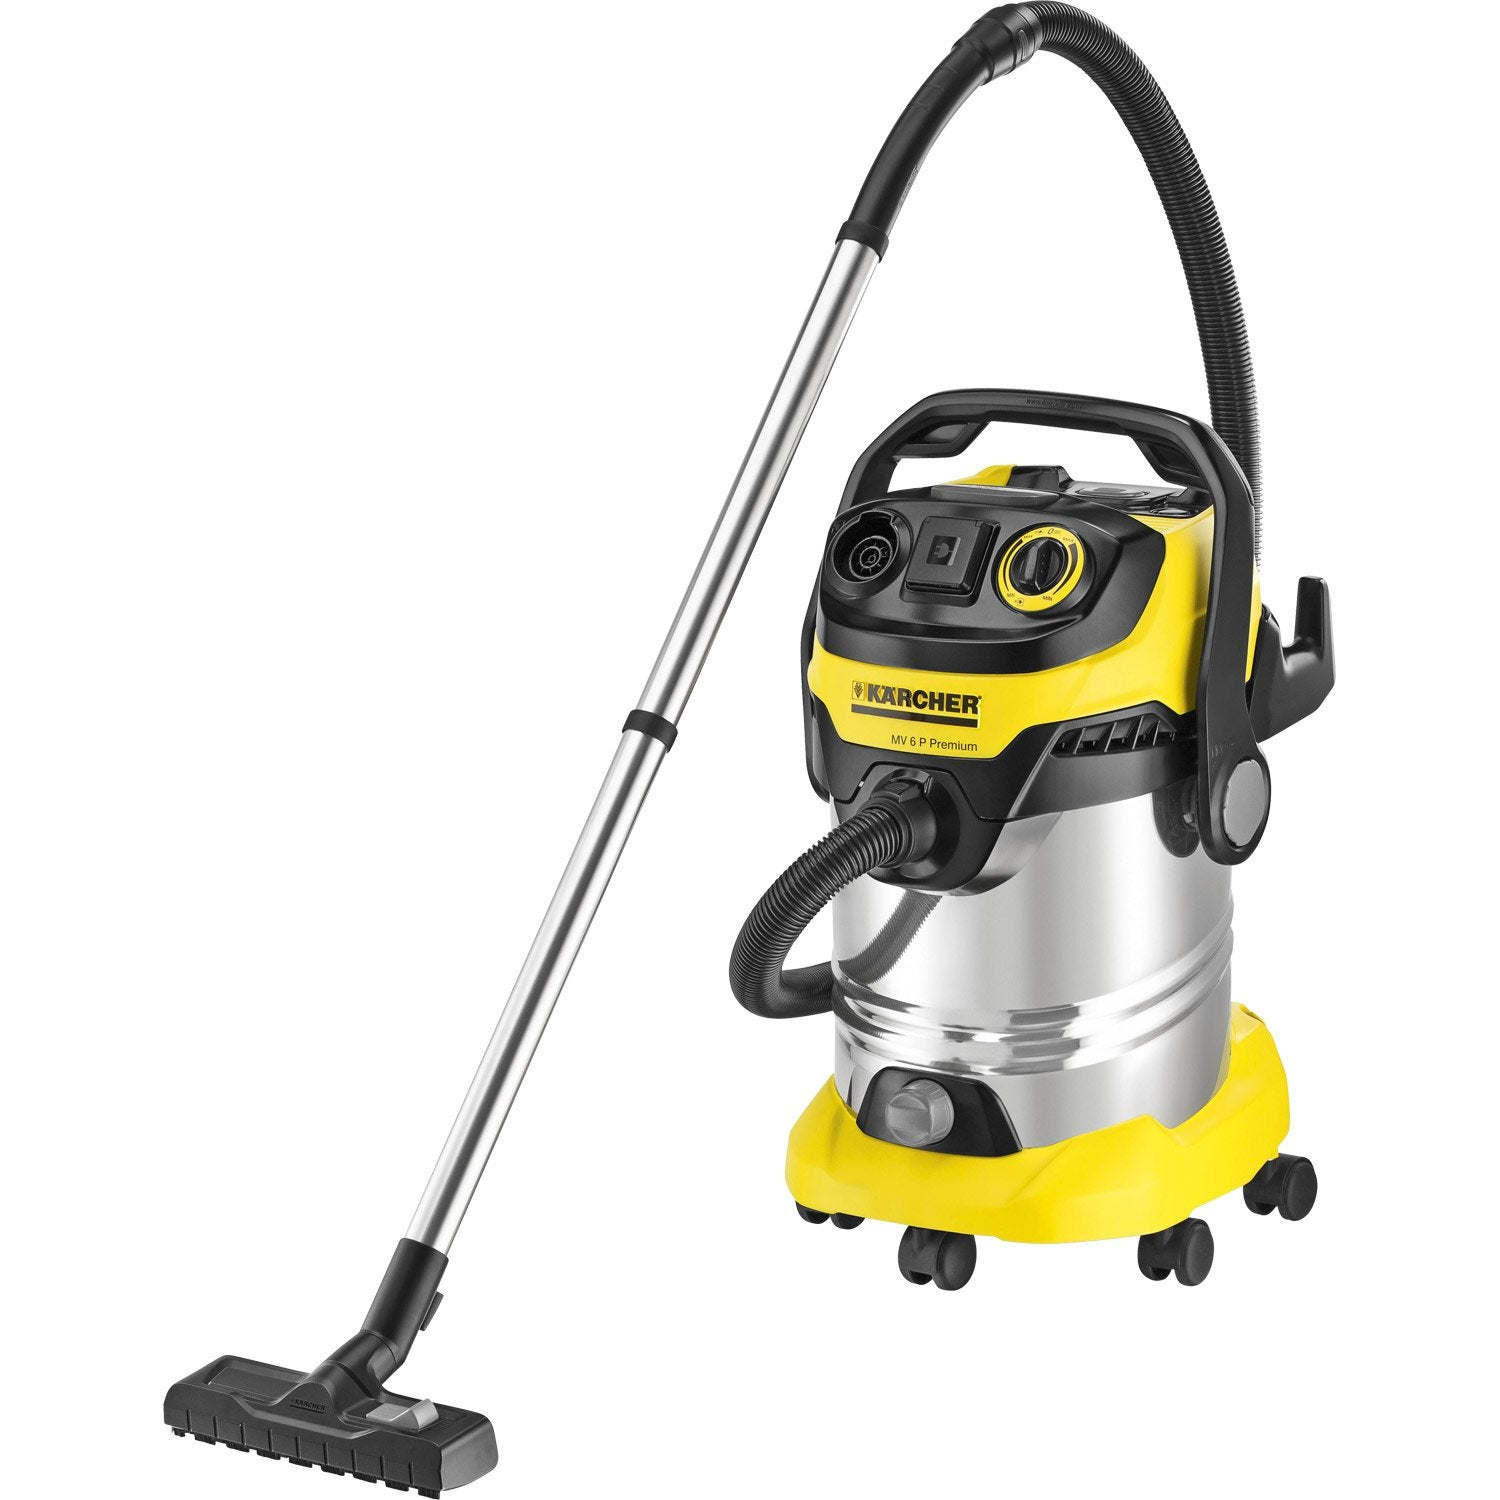 aspirateur eau poussi res et gravats karcher wd6 premium. Black Bedroom Furniture Sets. Home Design Ideas